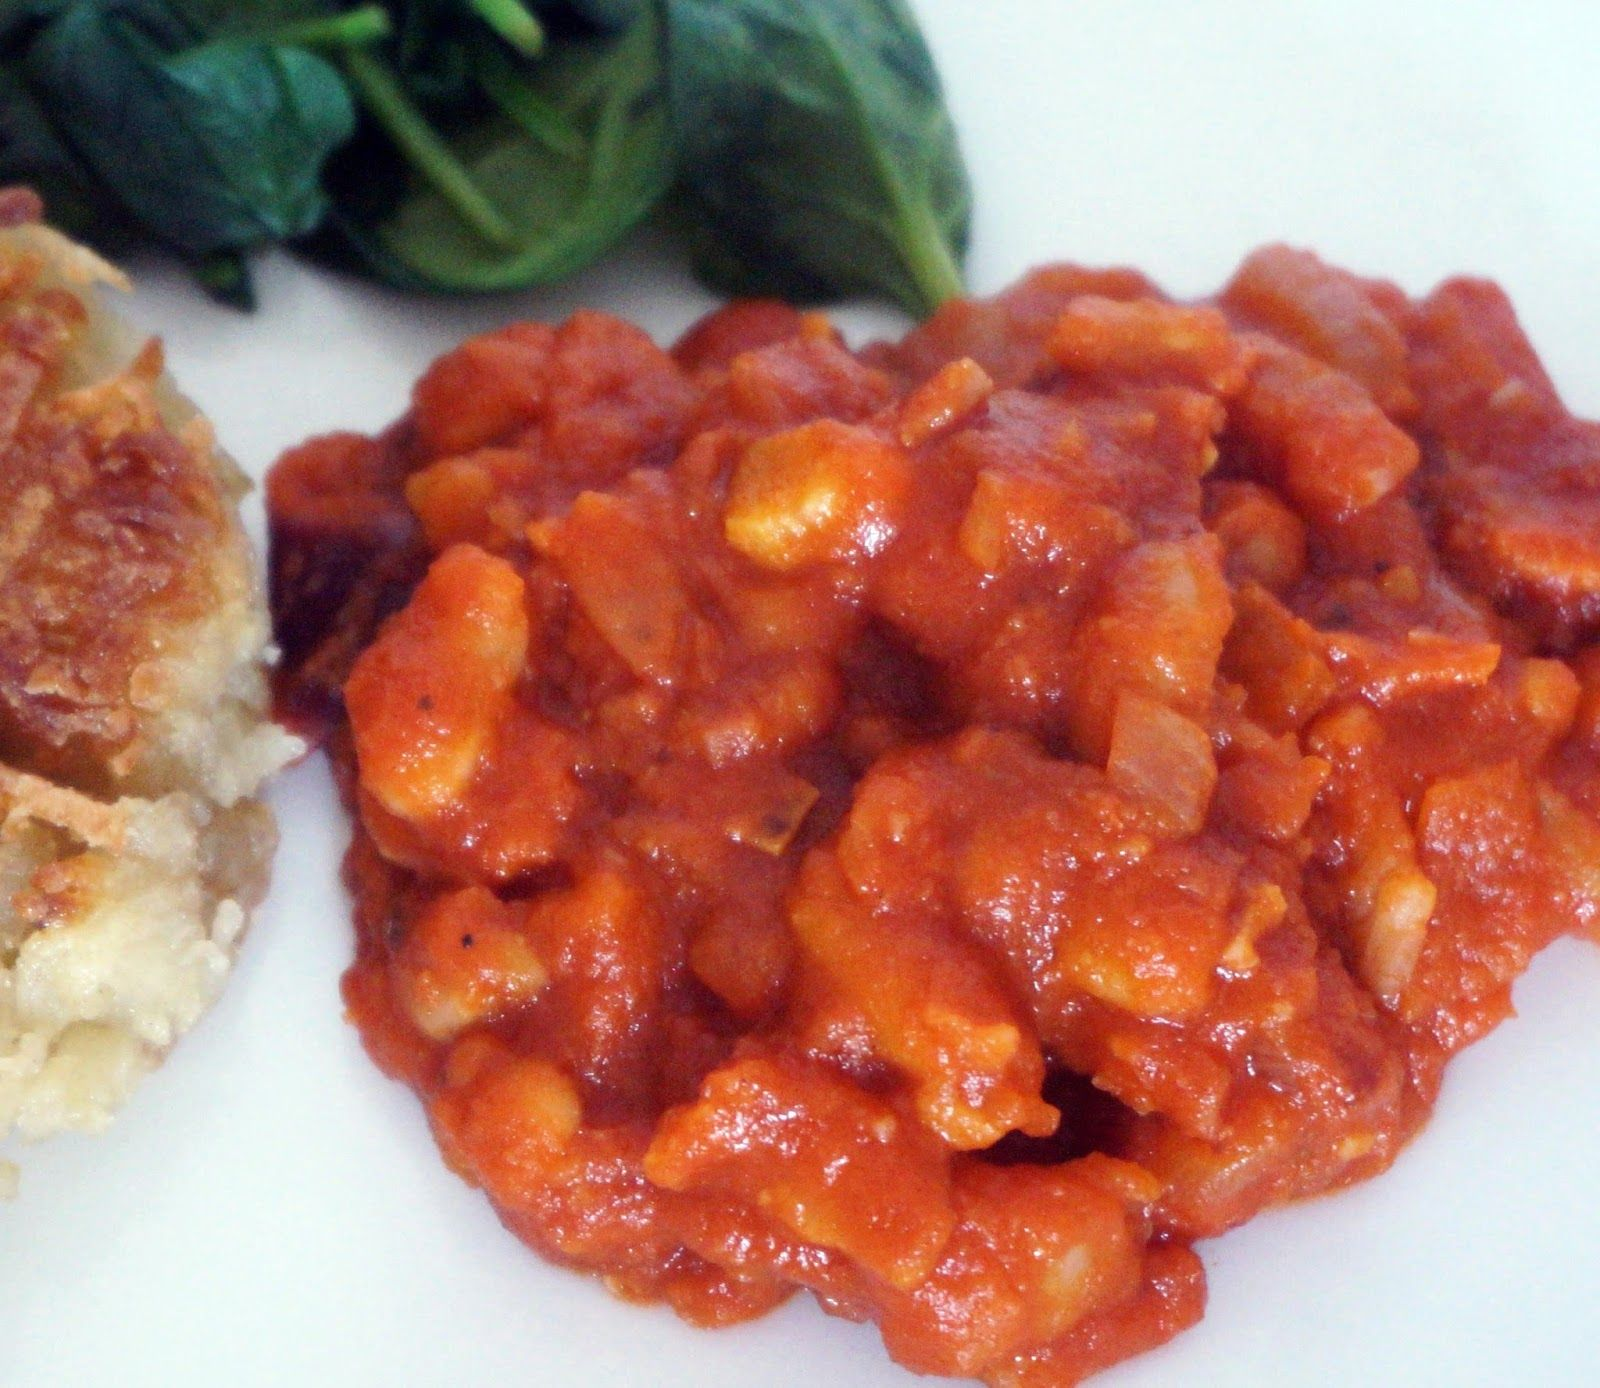 Gordon Ramsay's Baked Beans.    Sub out the bacon + W. sauce